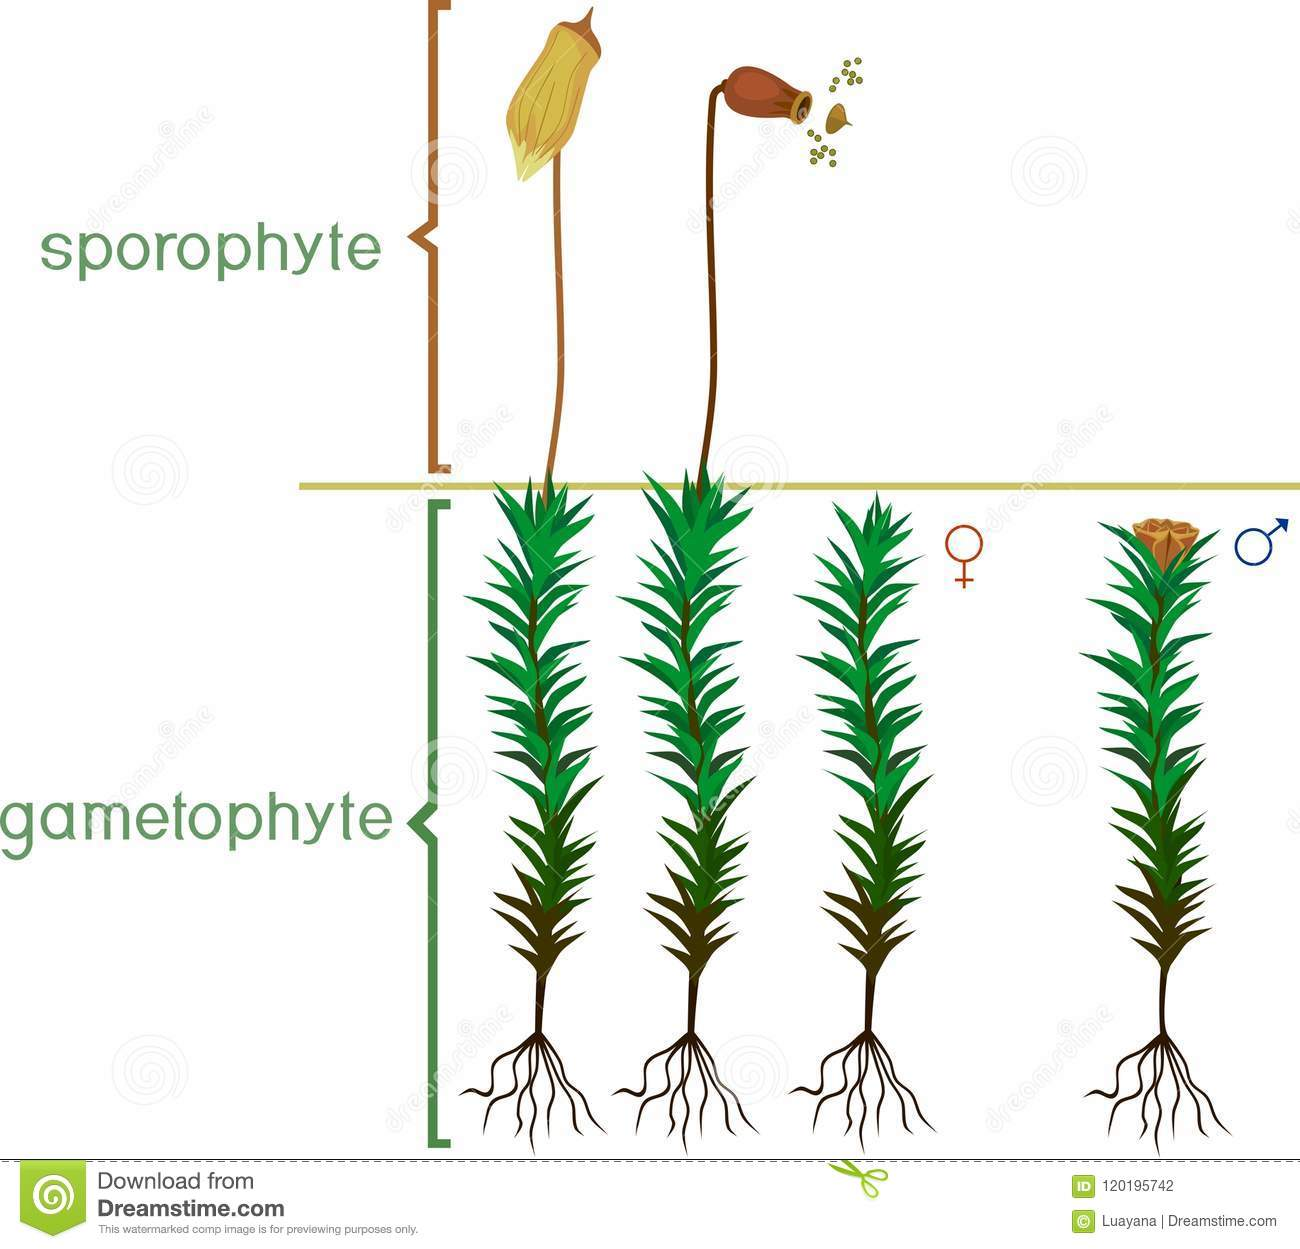 Structure Of Haircap Moss Gametophyte With Sporophyte With